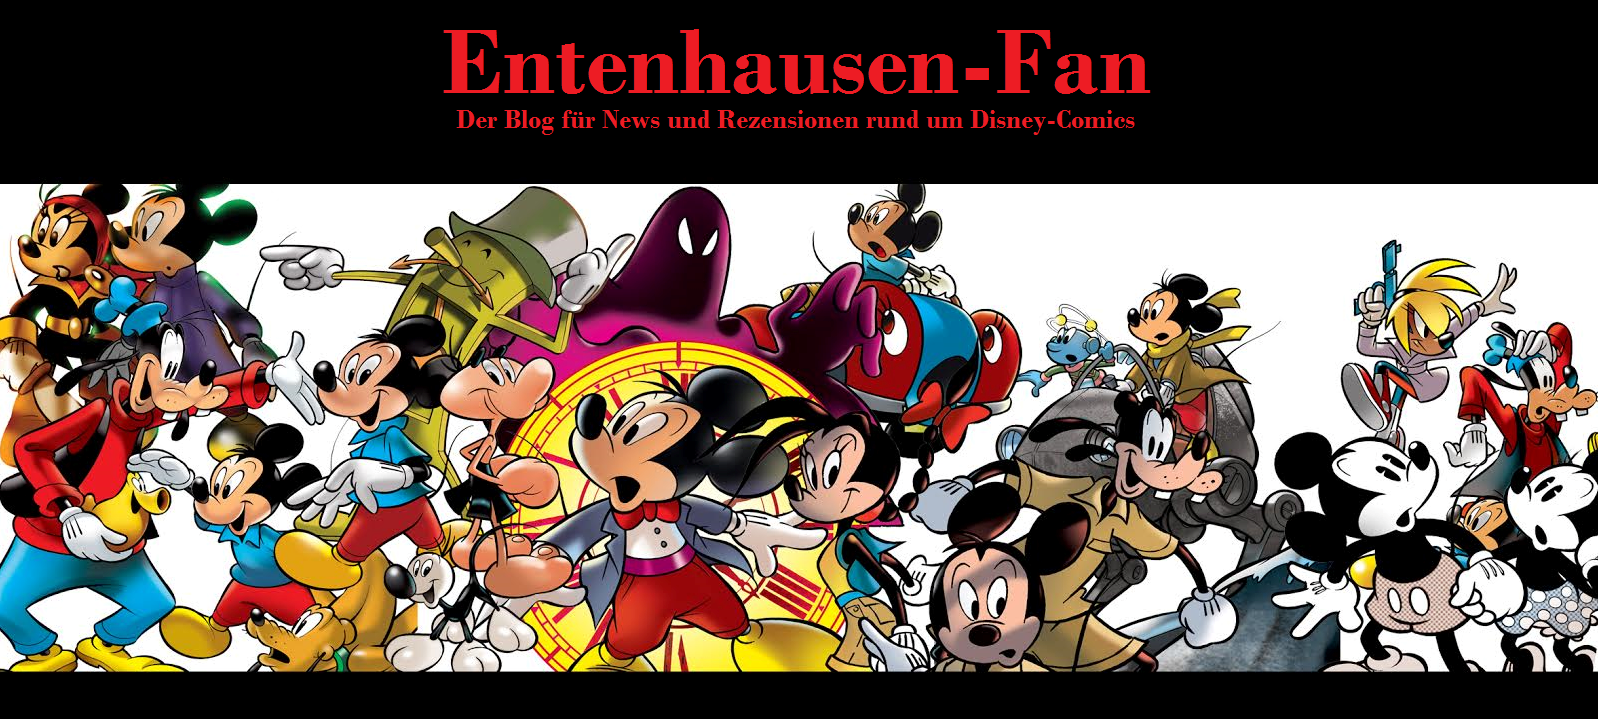 Entenhausen-Fan